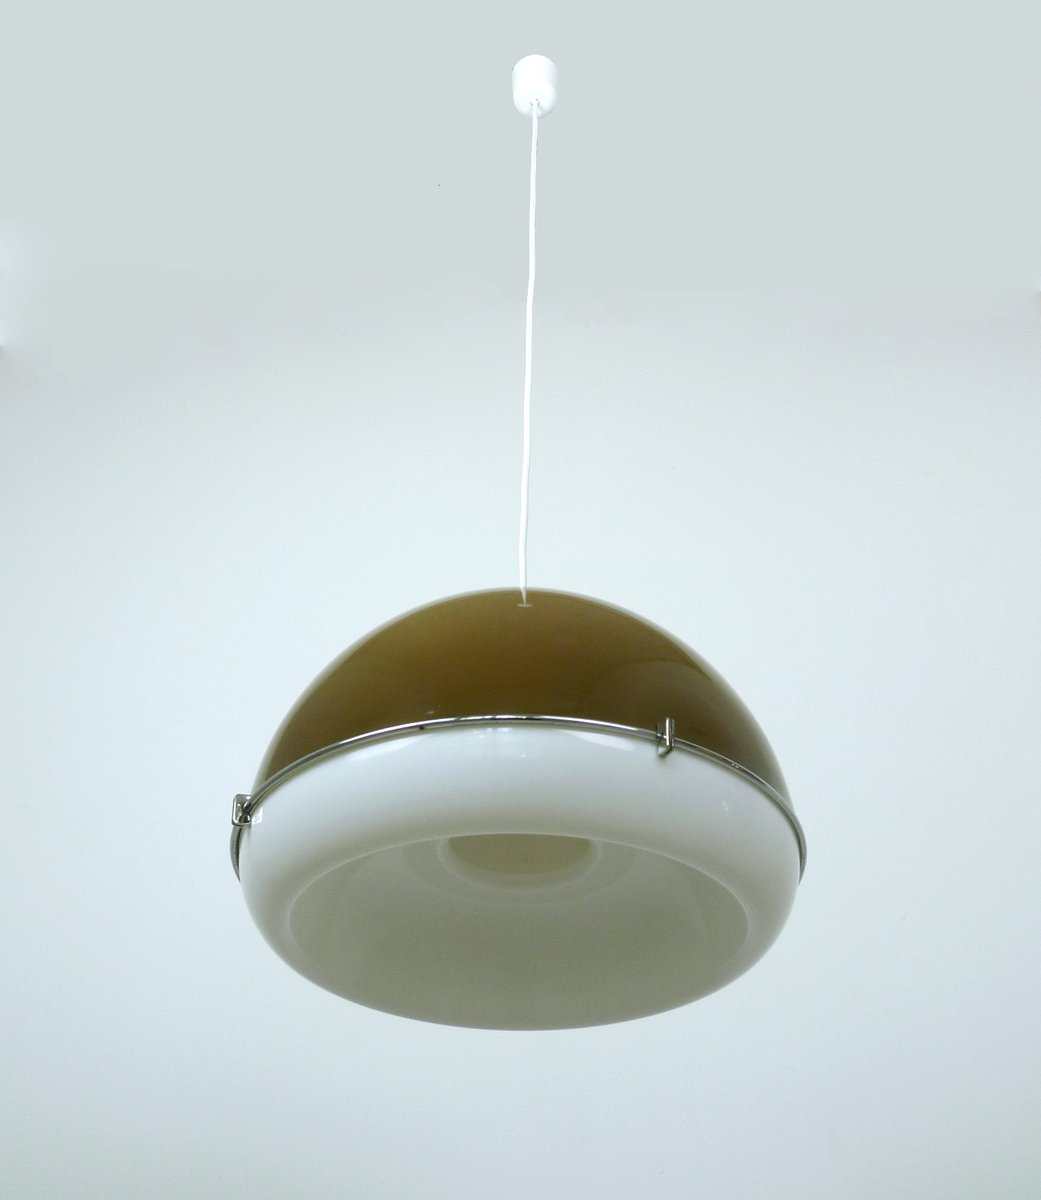 Pendant Light Shade Plastic : Ceiling light with bi colored plastic shade s for